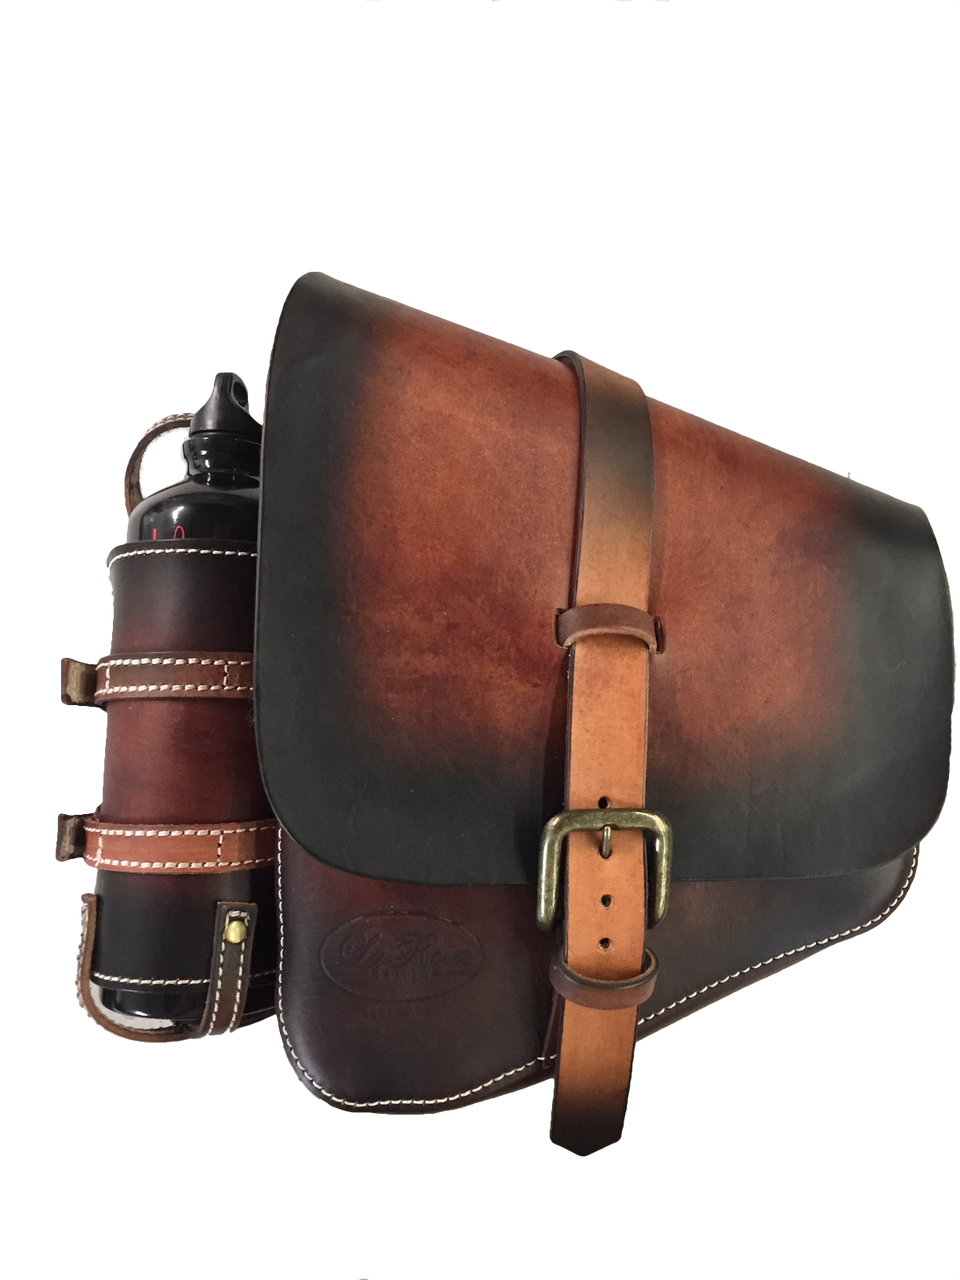 03dc56890ab1 La Rosa Harley-Davidson All Softail Models Left Side Solo Saddle Bag  Swingarm Bag - Hand Dyed Antique Leather with Fuel Bottle Holder. Price    285.00. Image ...